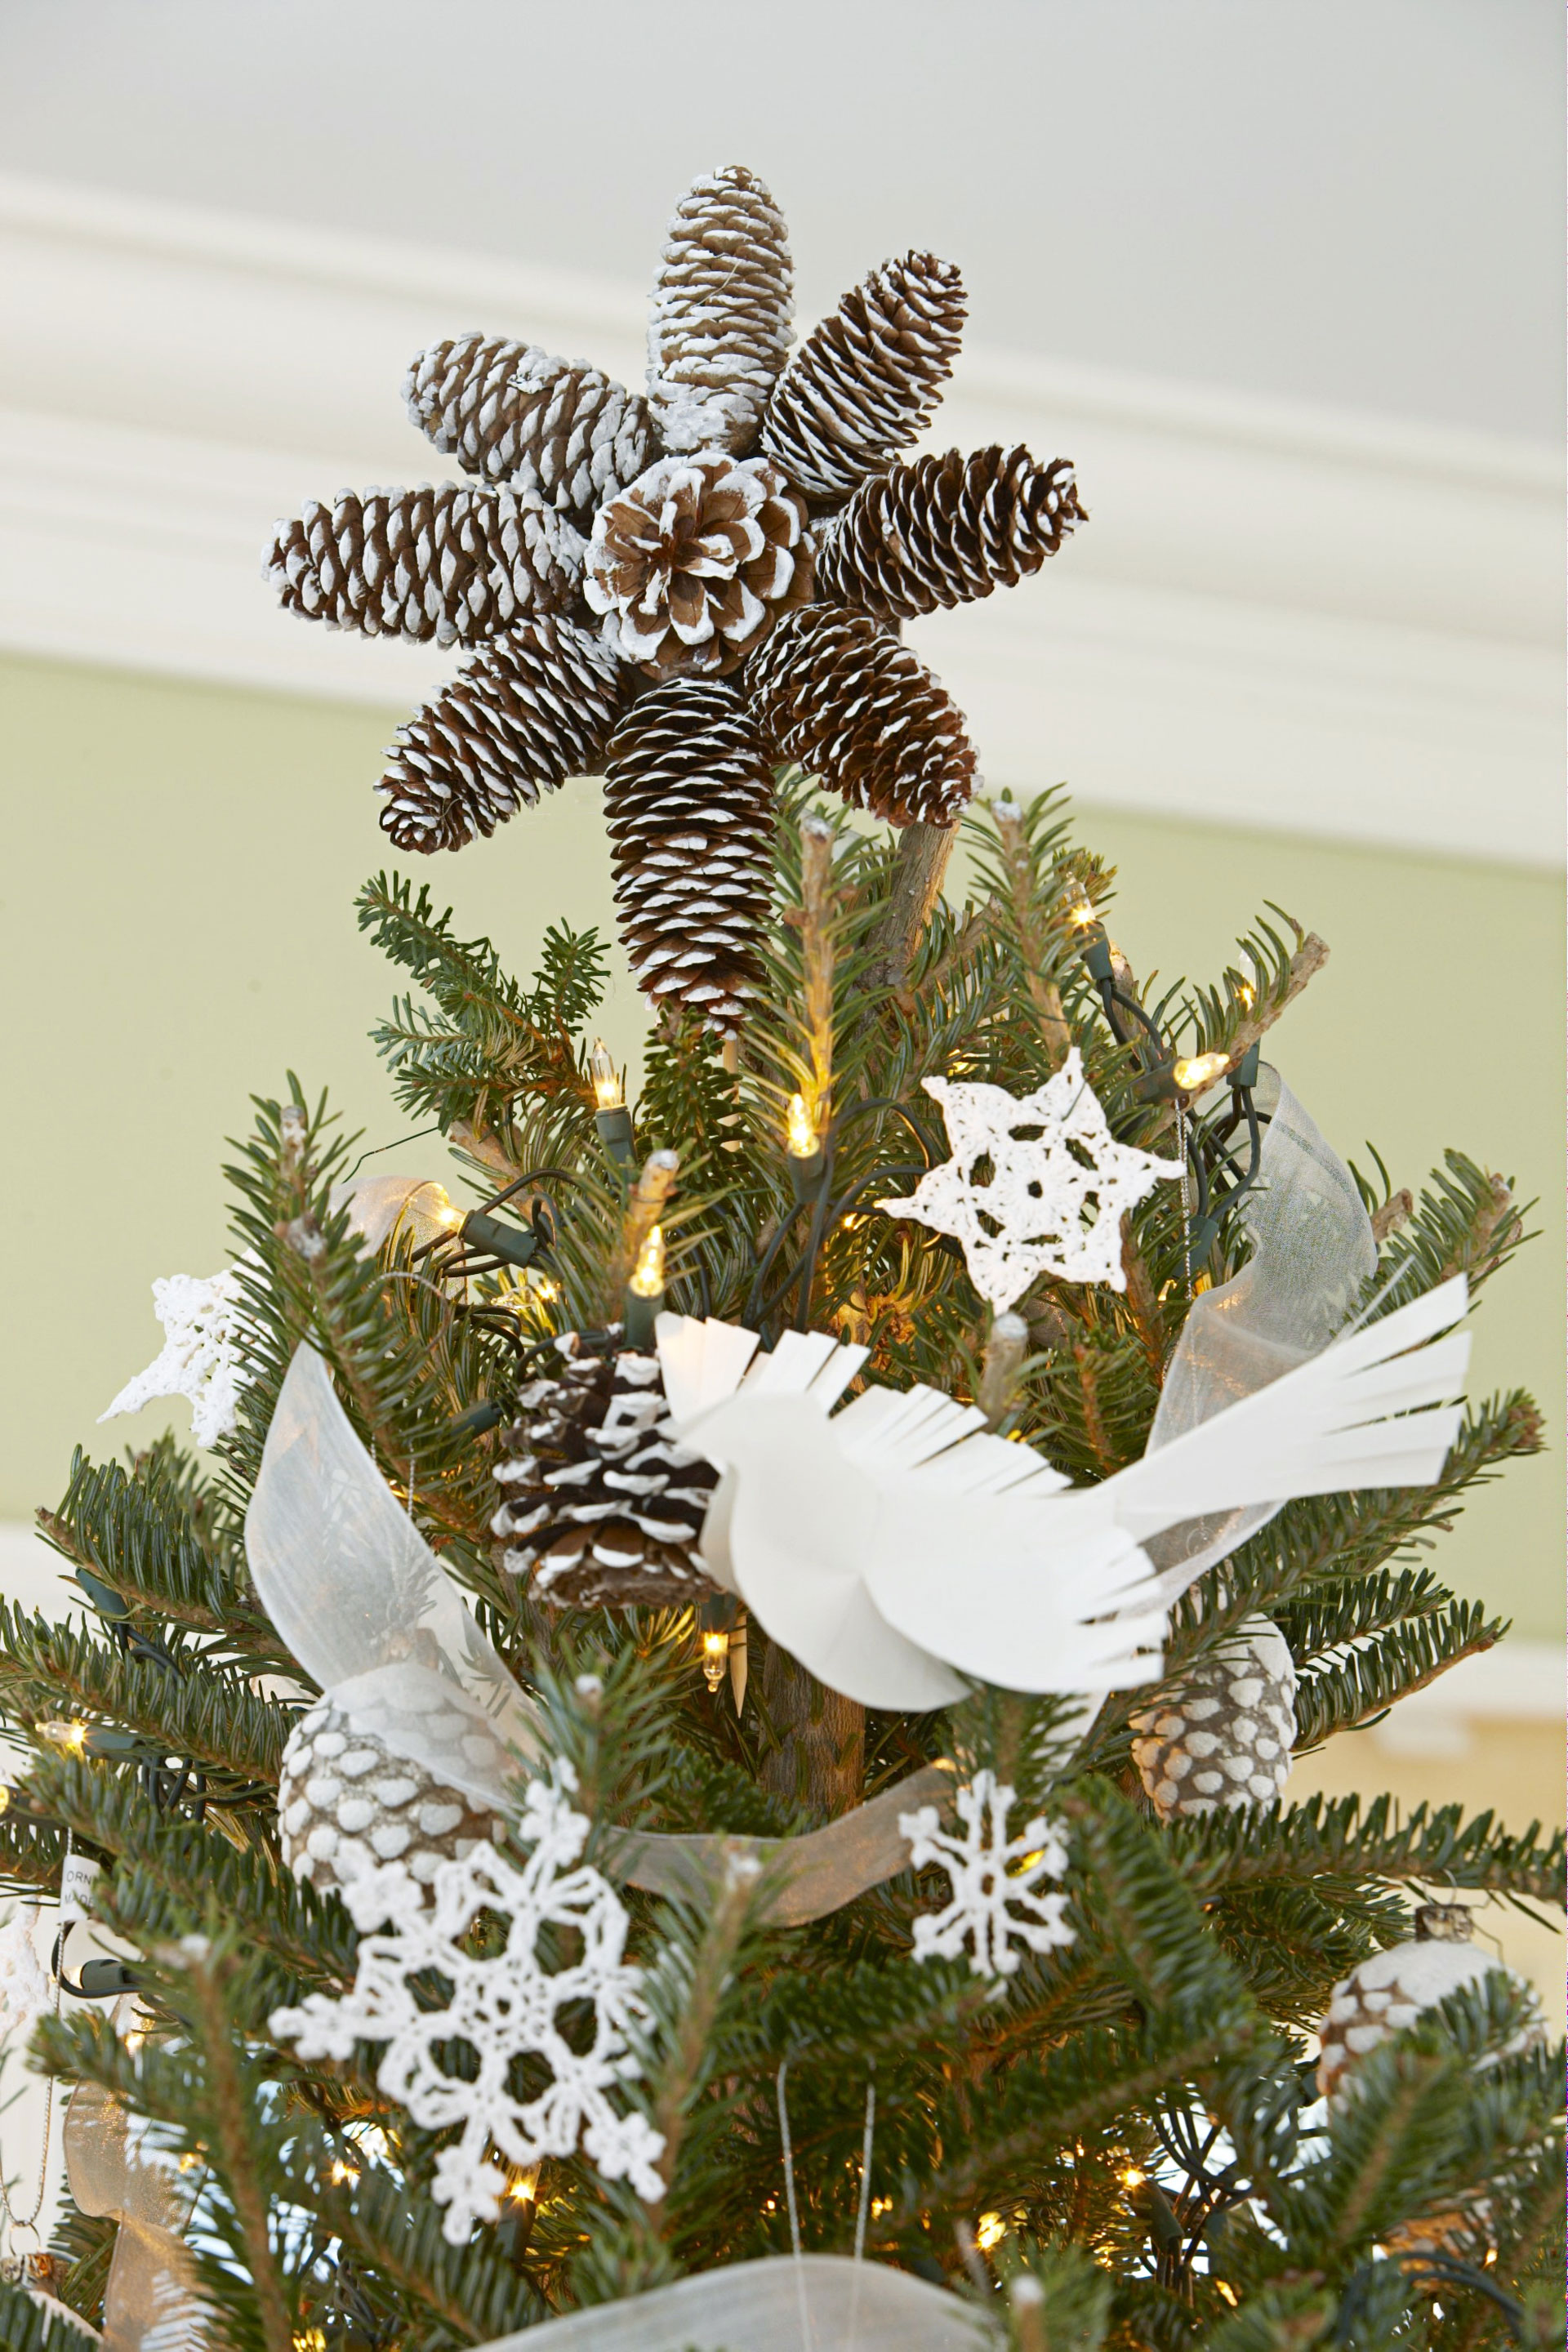 35 Unique Christmas Tree Decorations  2017 Ideas For Decorating Your  Christmas Tree